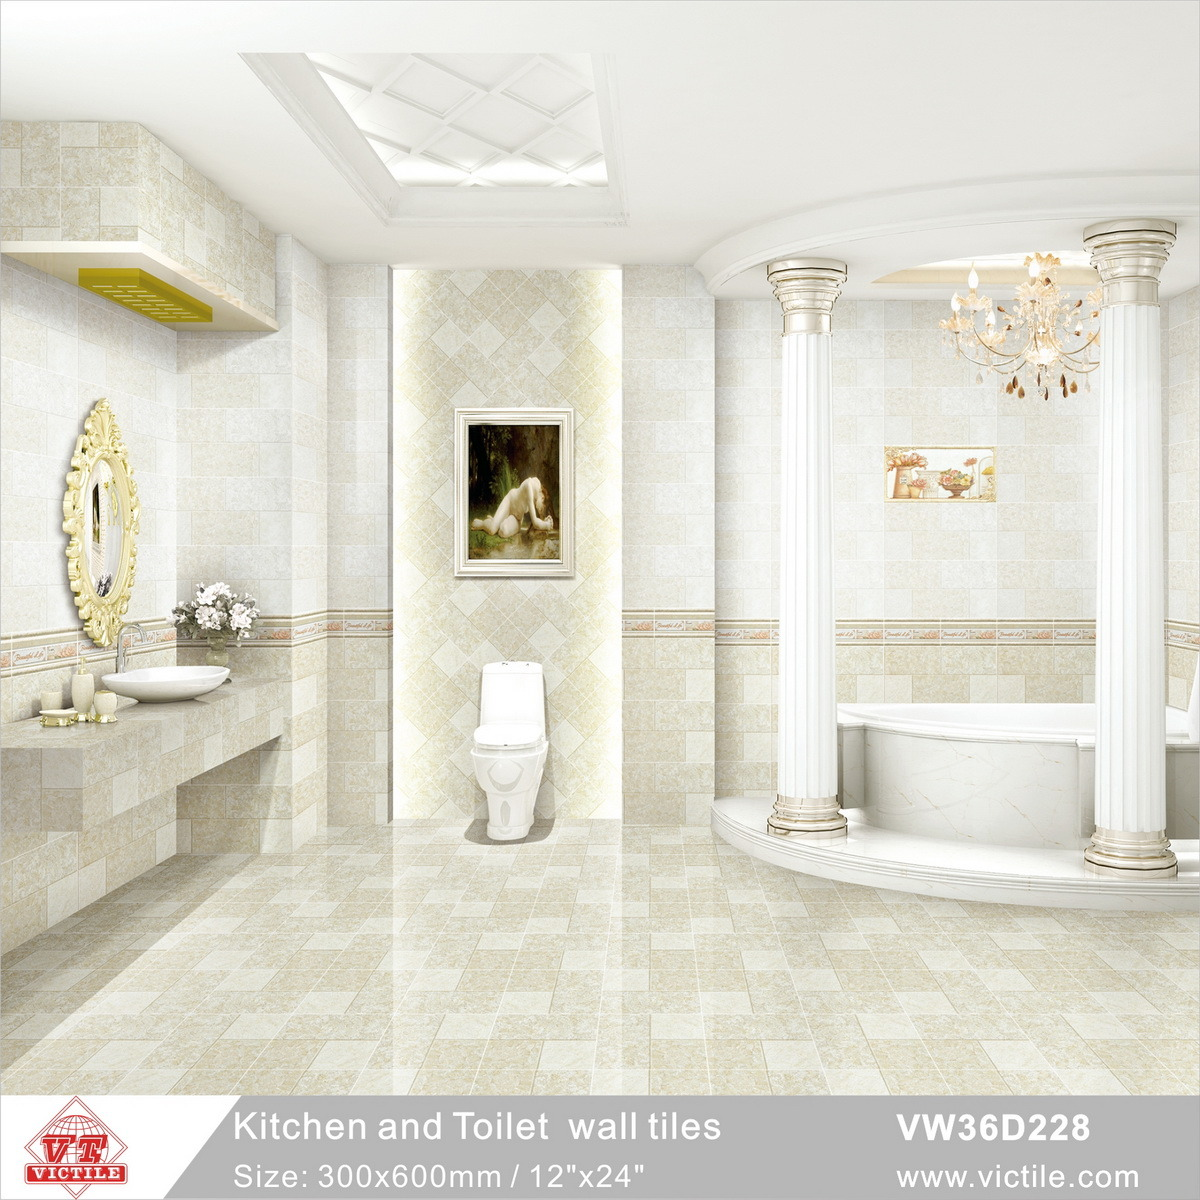 China Building Material 300600 Ceramic Wall Tiles For Kitchen And